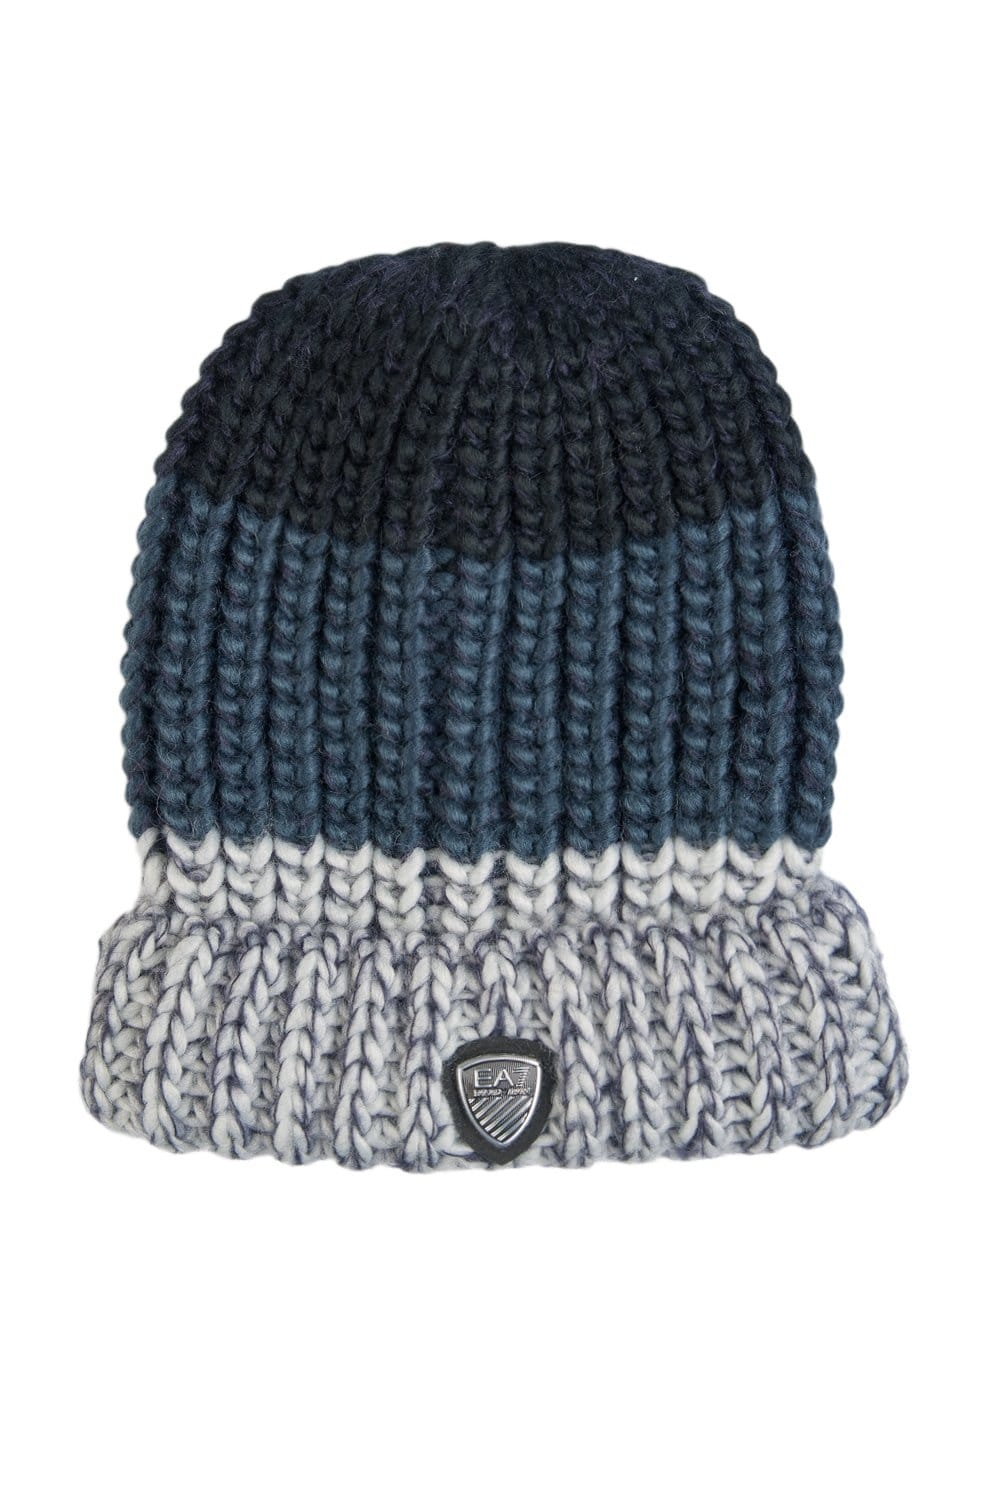 750801a3fa0 EA7 by Emporio Armani Beanie Hat in Navy Blue Grey and Brown 2755545A392